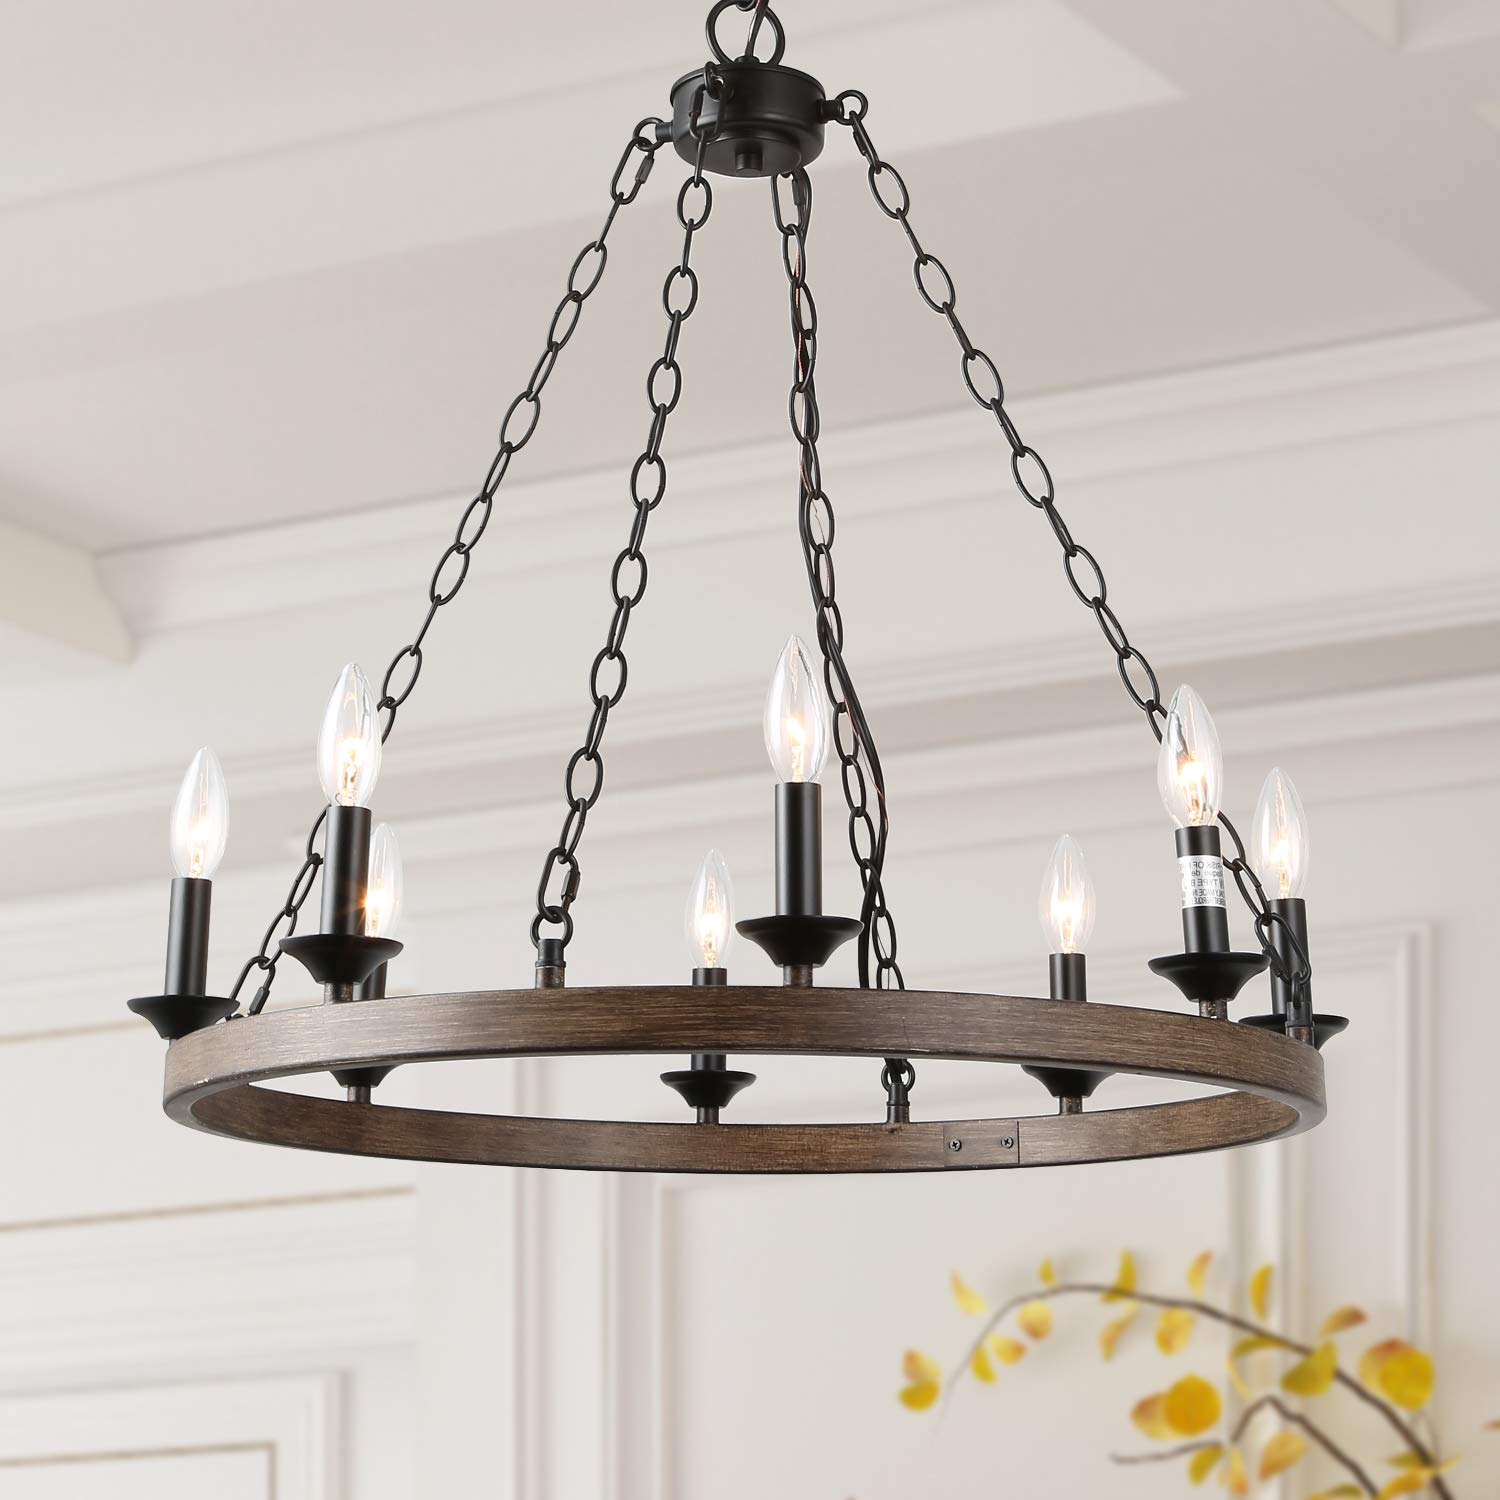 Log barn 8 lights farmhouse island pendant wagon wheel lightening chandelier in metallic faux wood finish 26 medium kitchen light fixture a03470